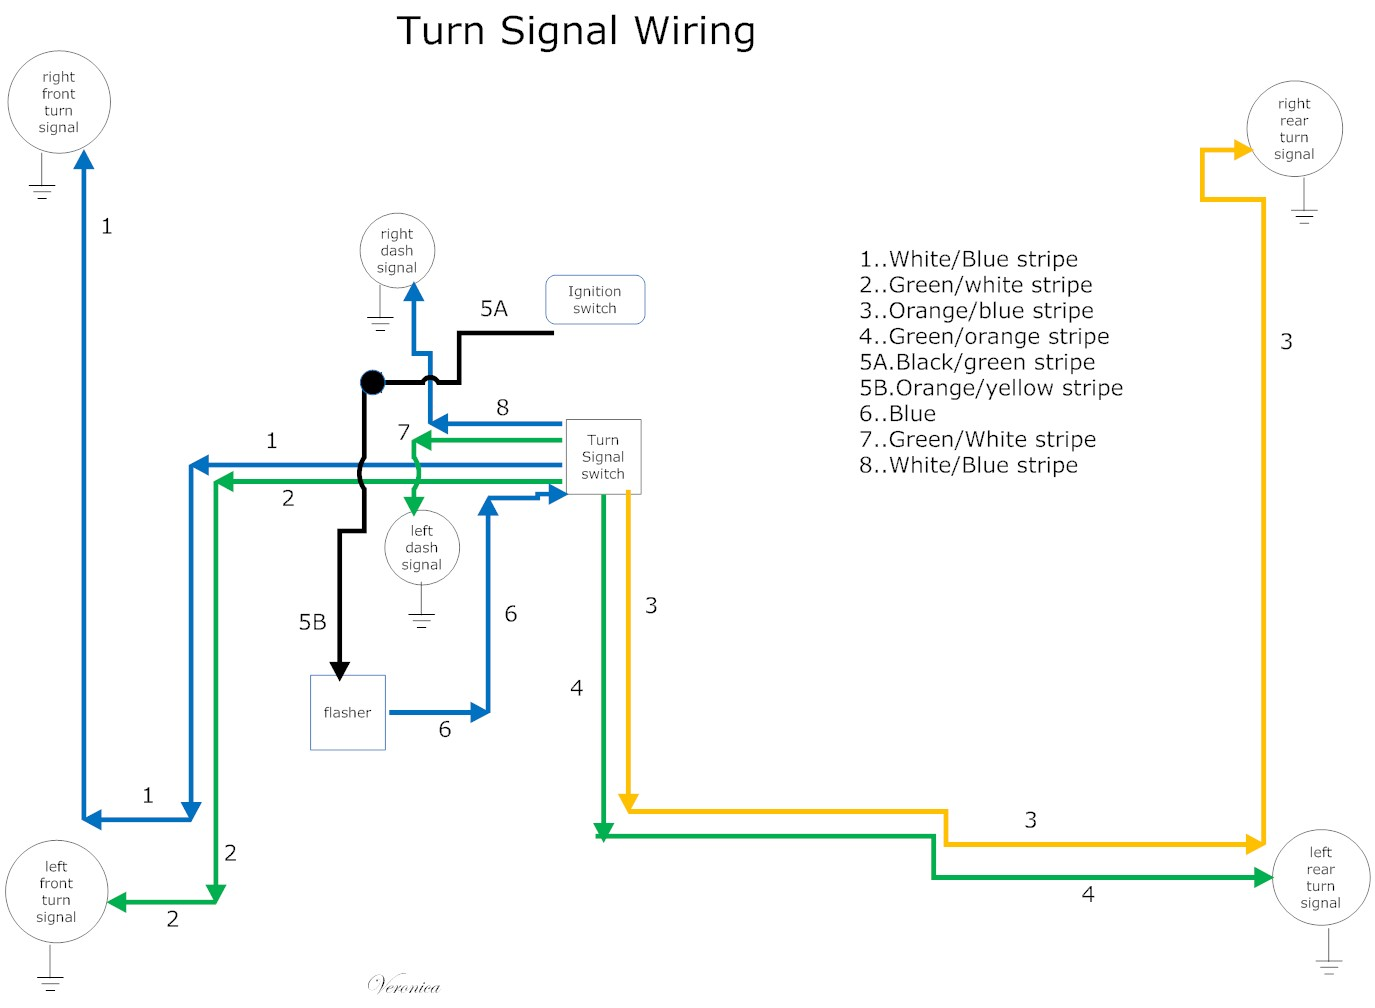 wiring diagram turn lamp wiring image wiring diagram ford turn signal switch wiring ford wiring diagrams on wiring diagram turn lamp